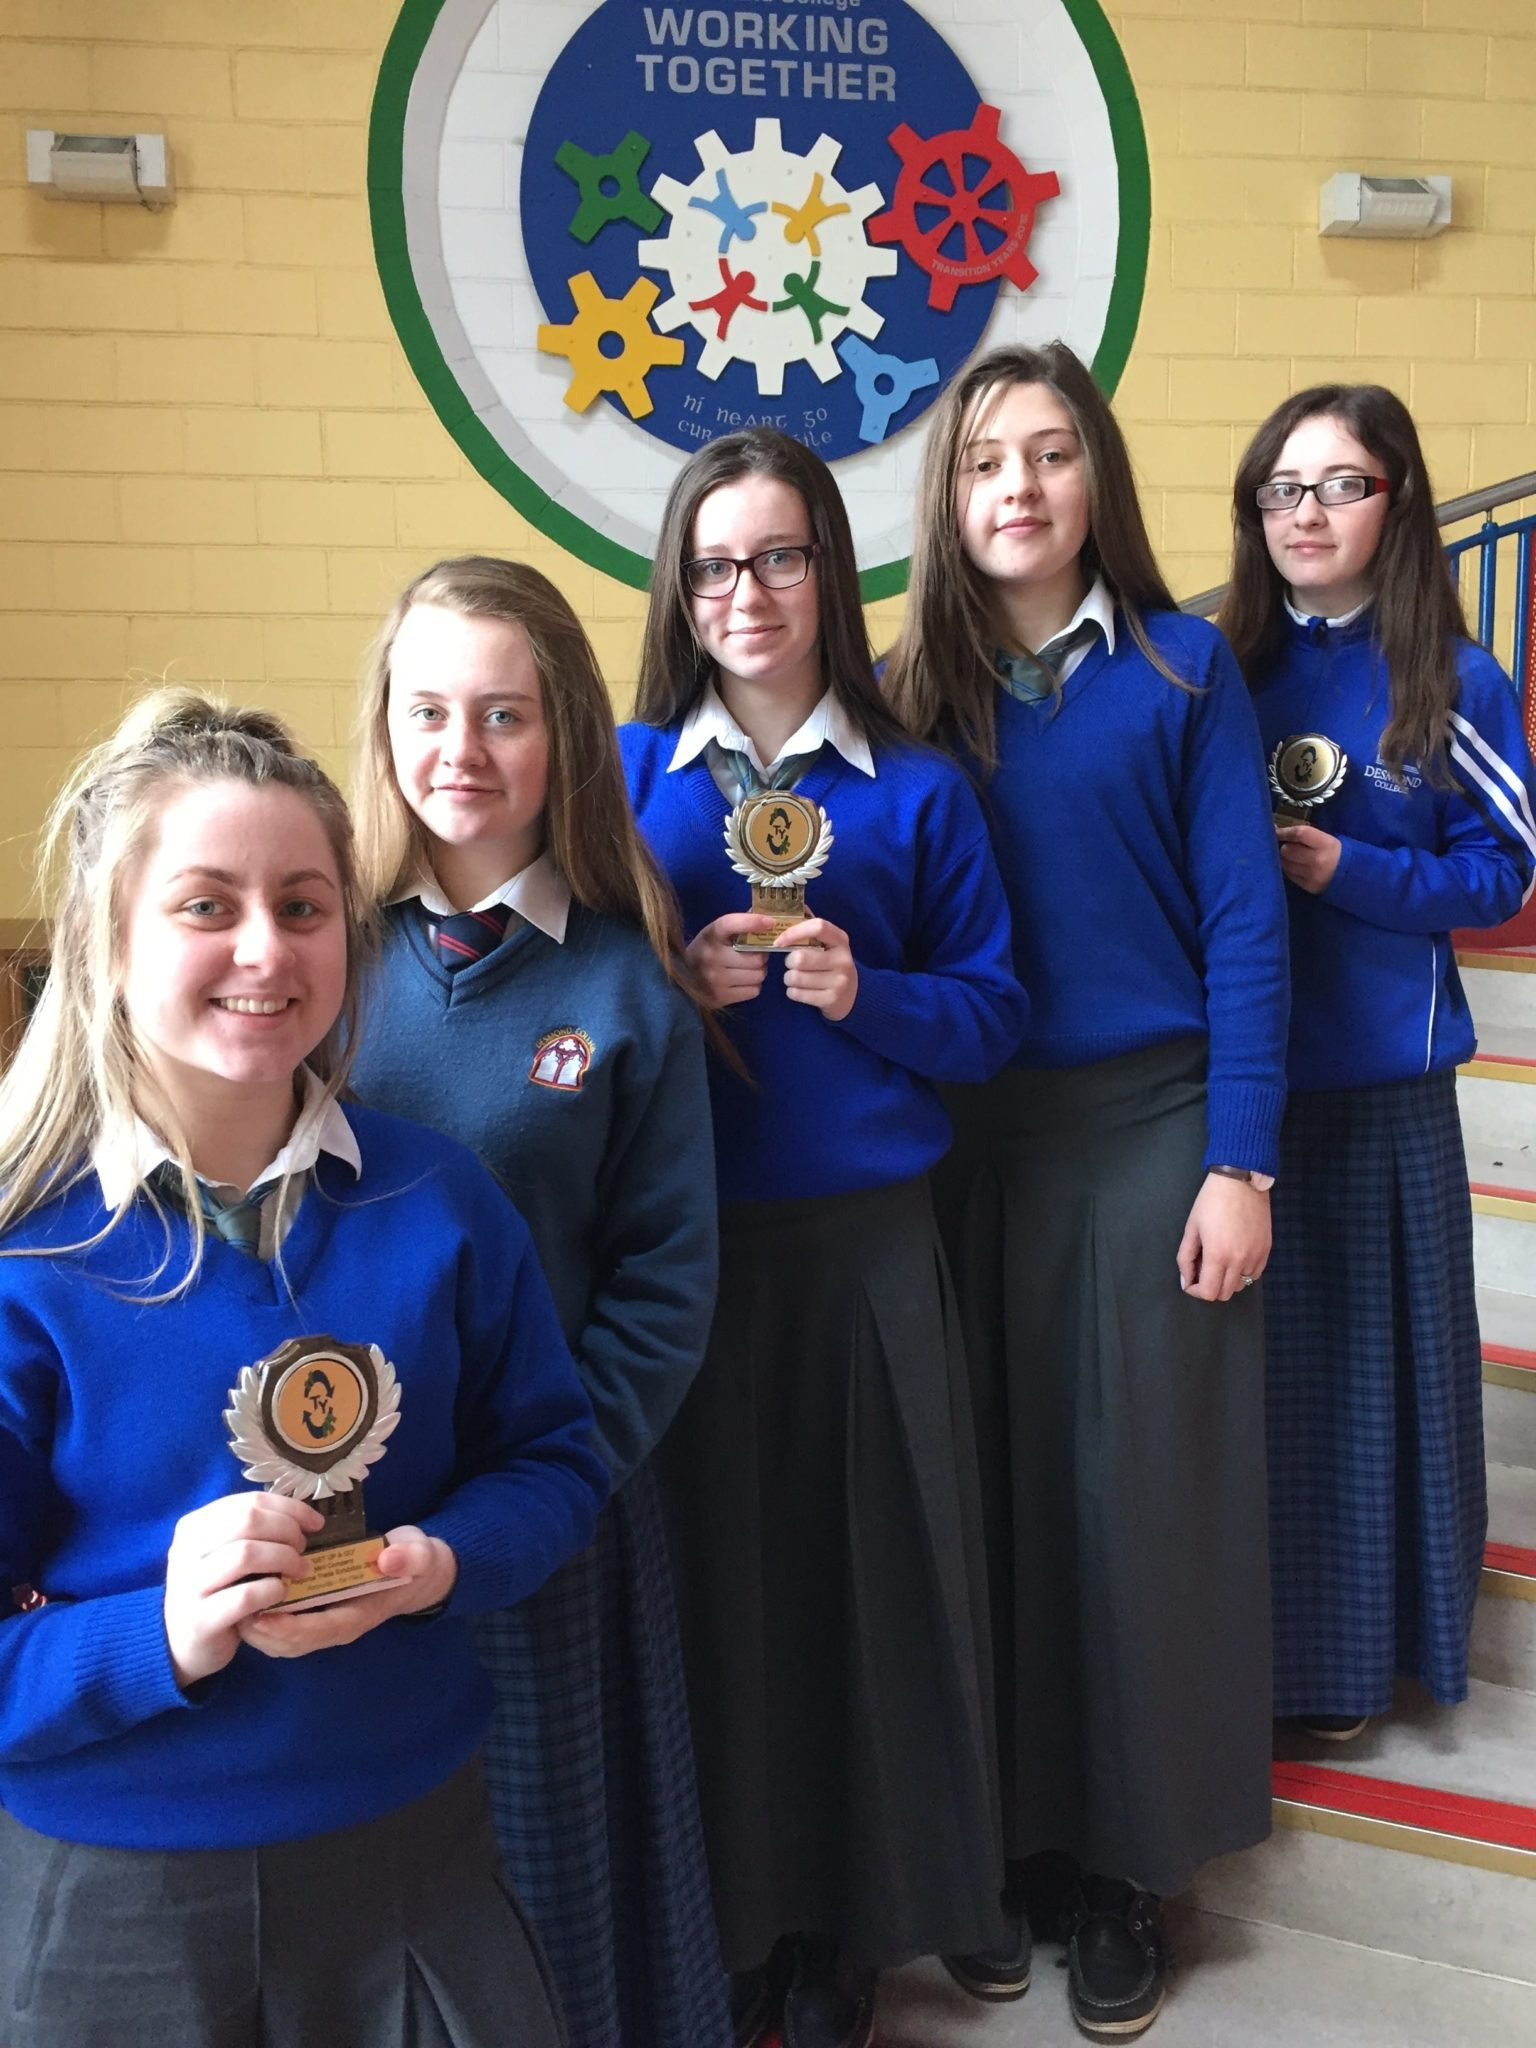 """April 2016: Desmond College students are winners of the Get Up and Go Enterprise Competition 2016, with their Product """"Coladh Samh"""" pictured: Leah Barry, Caoimhe Danaher, Aine Upton, Muireann Tobin and Sophie Bridgeman."""